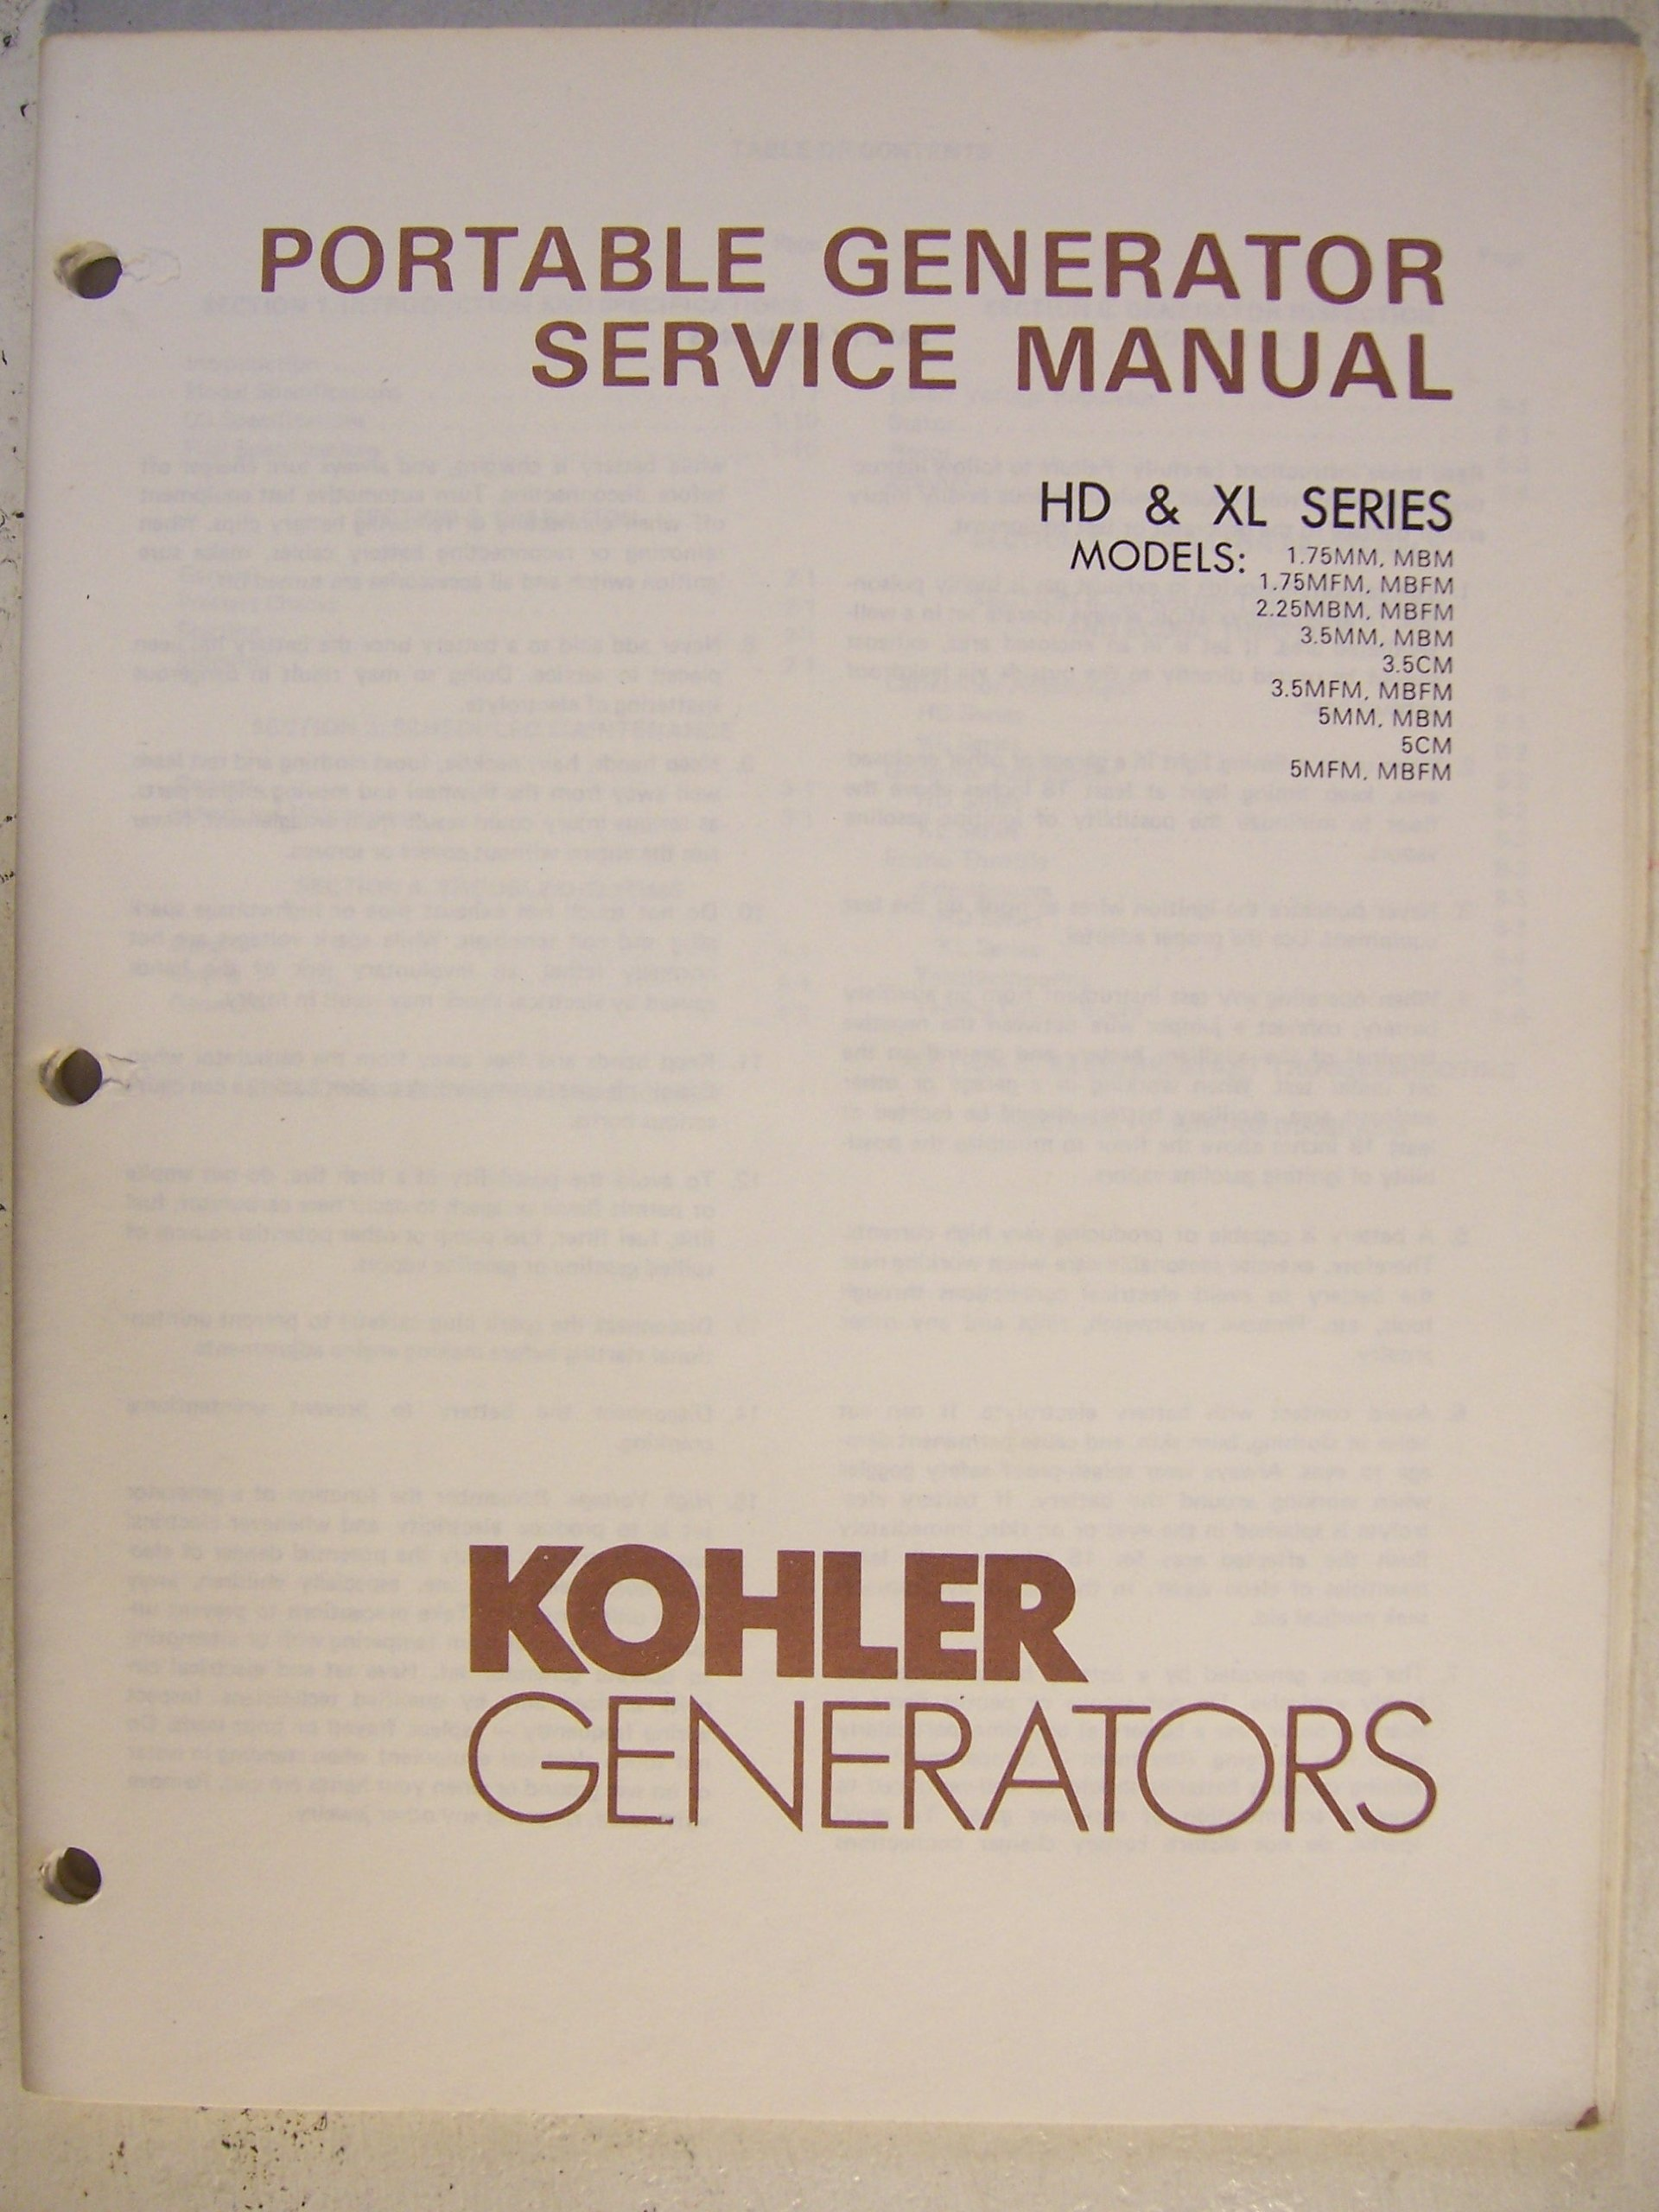 Kohler Generators - Portable Generator Service Manual HD ... on kohler kt17qs diagram, kohler command wiring diagrams, kohler generator special tools, kohler engine electrical diagram, lifan generators wiring diagram, kohler engine wiring diagrams, kohler generator schematics, remote spotlight wiring diagram, kohler engine parts diagram, kohler generators start stop, kohler generator fuel tank, decision maker 3 wiring diagram, case 446 tractor wiring diagram, kohler k321 engine diagram s, kohler charging system diagram, kohler key switch wiring diagram, kohler wiring diagram manual, 240v single phase motor wiring diagram, kohler generator parts diagram, case tractor starter wiring diagram,